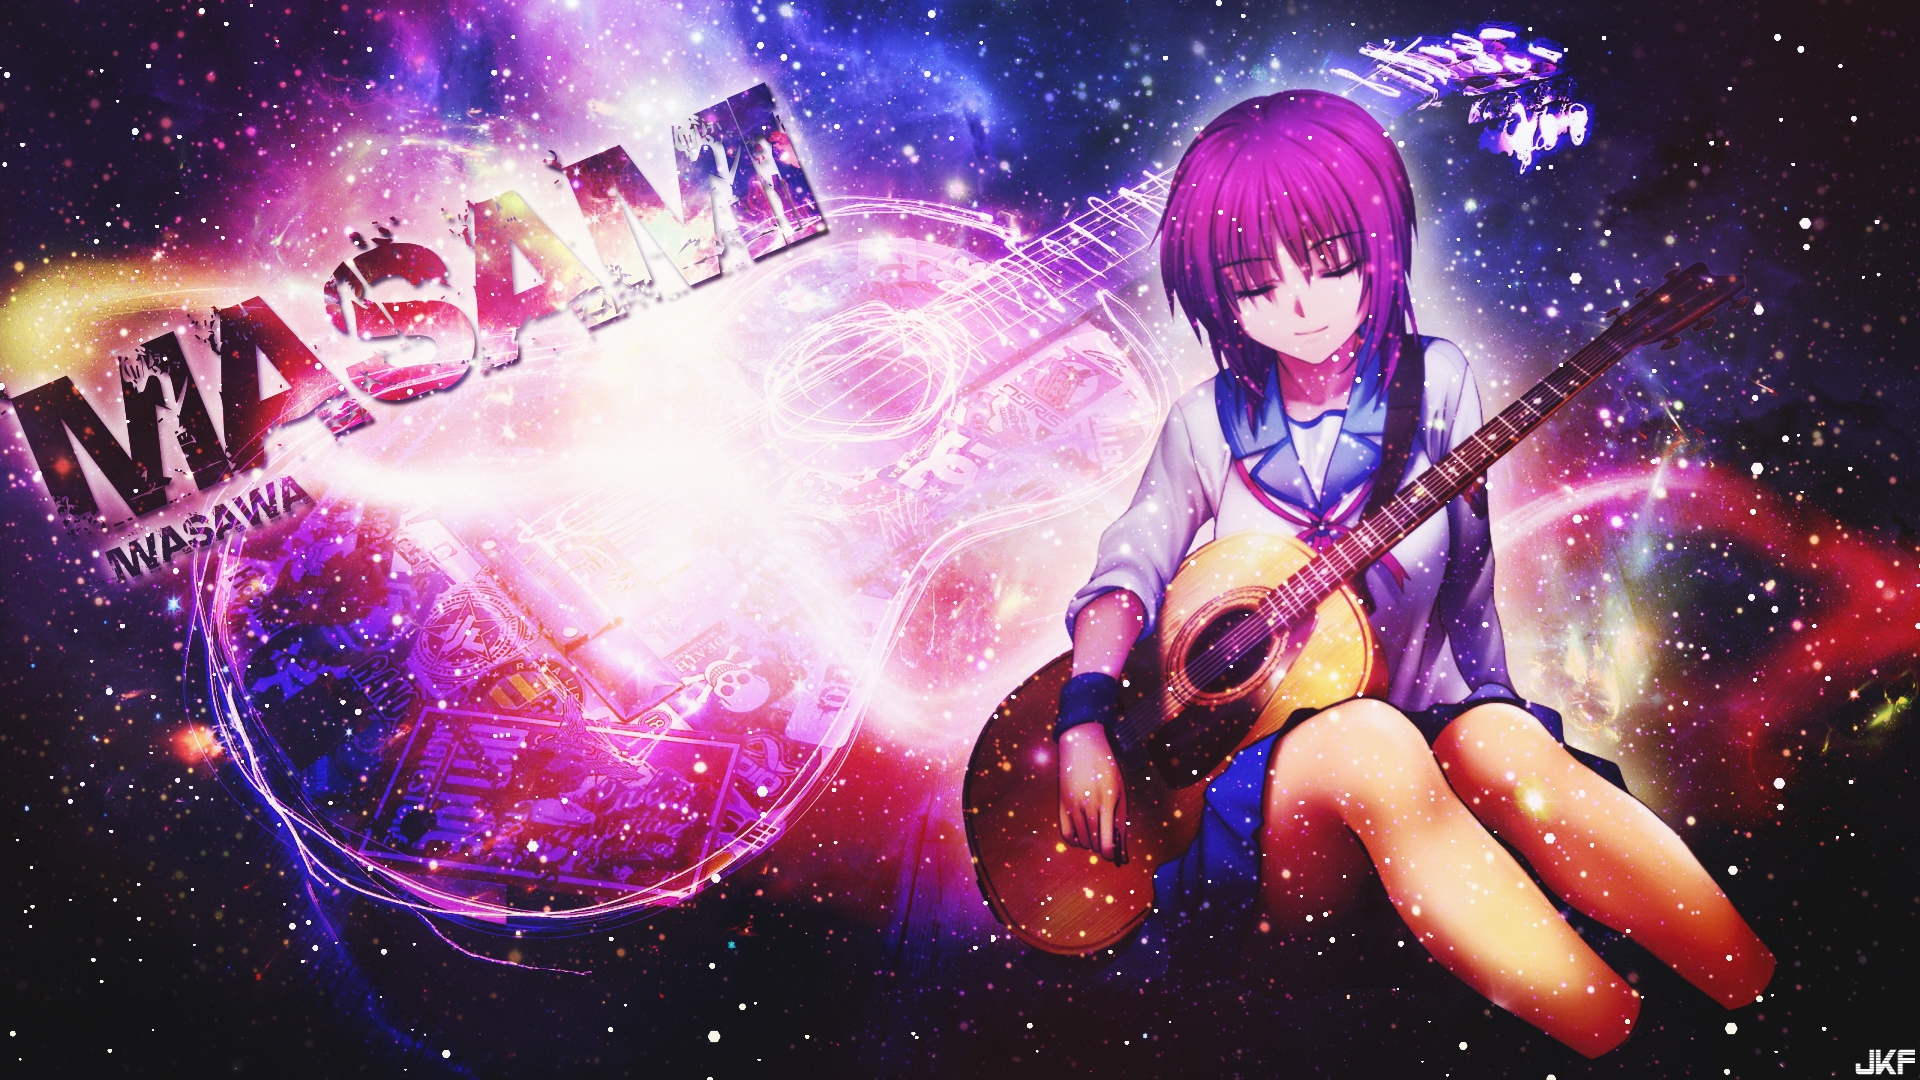 masami_wallpaper_by_dinocojv-d8t7ykh.jpg